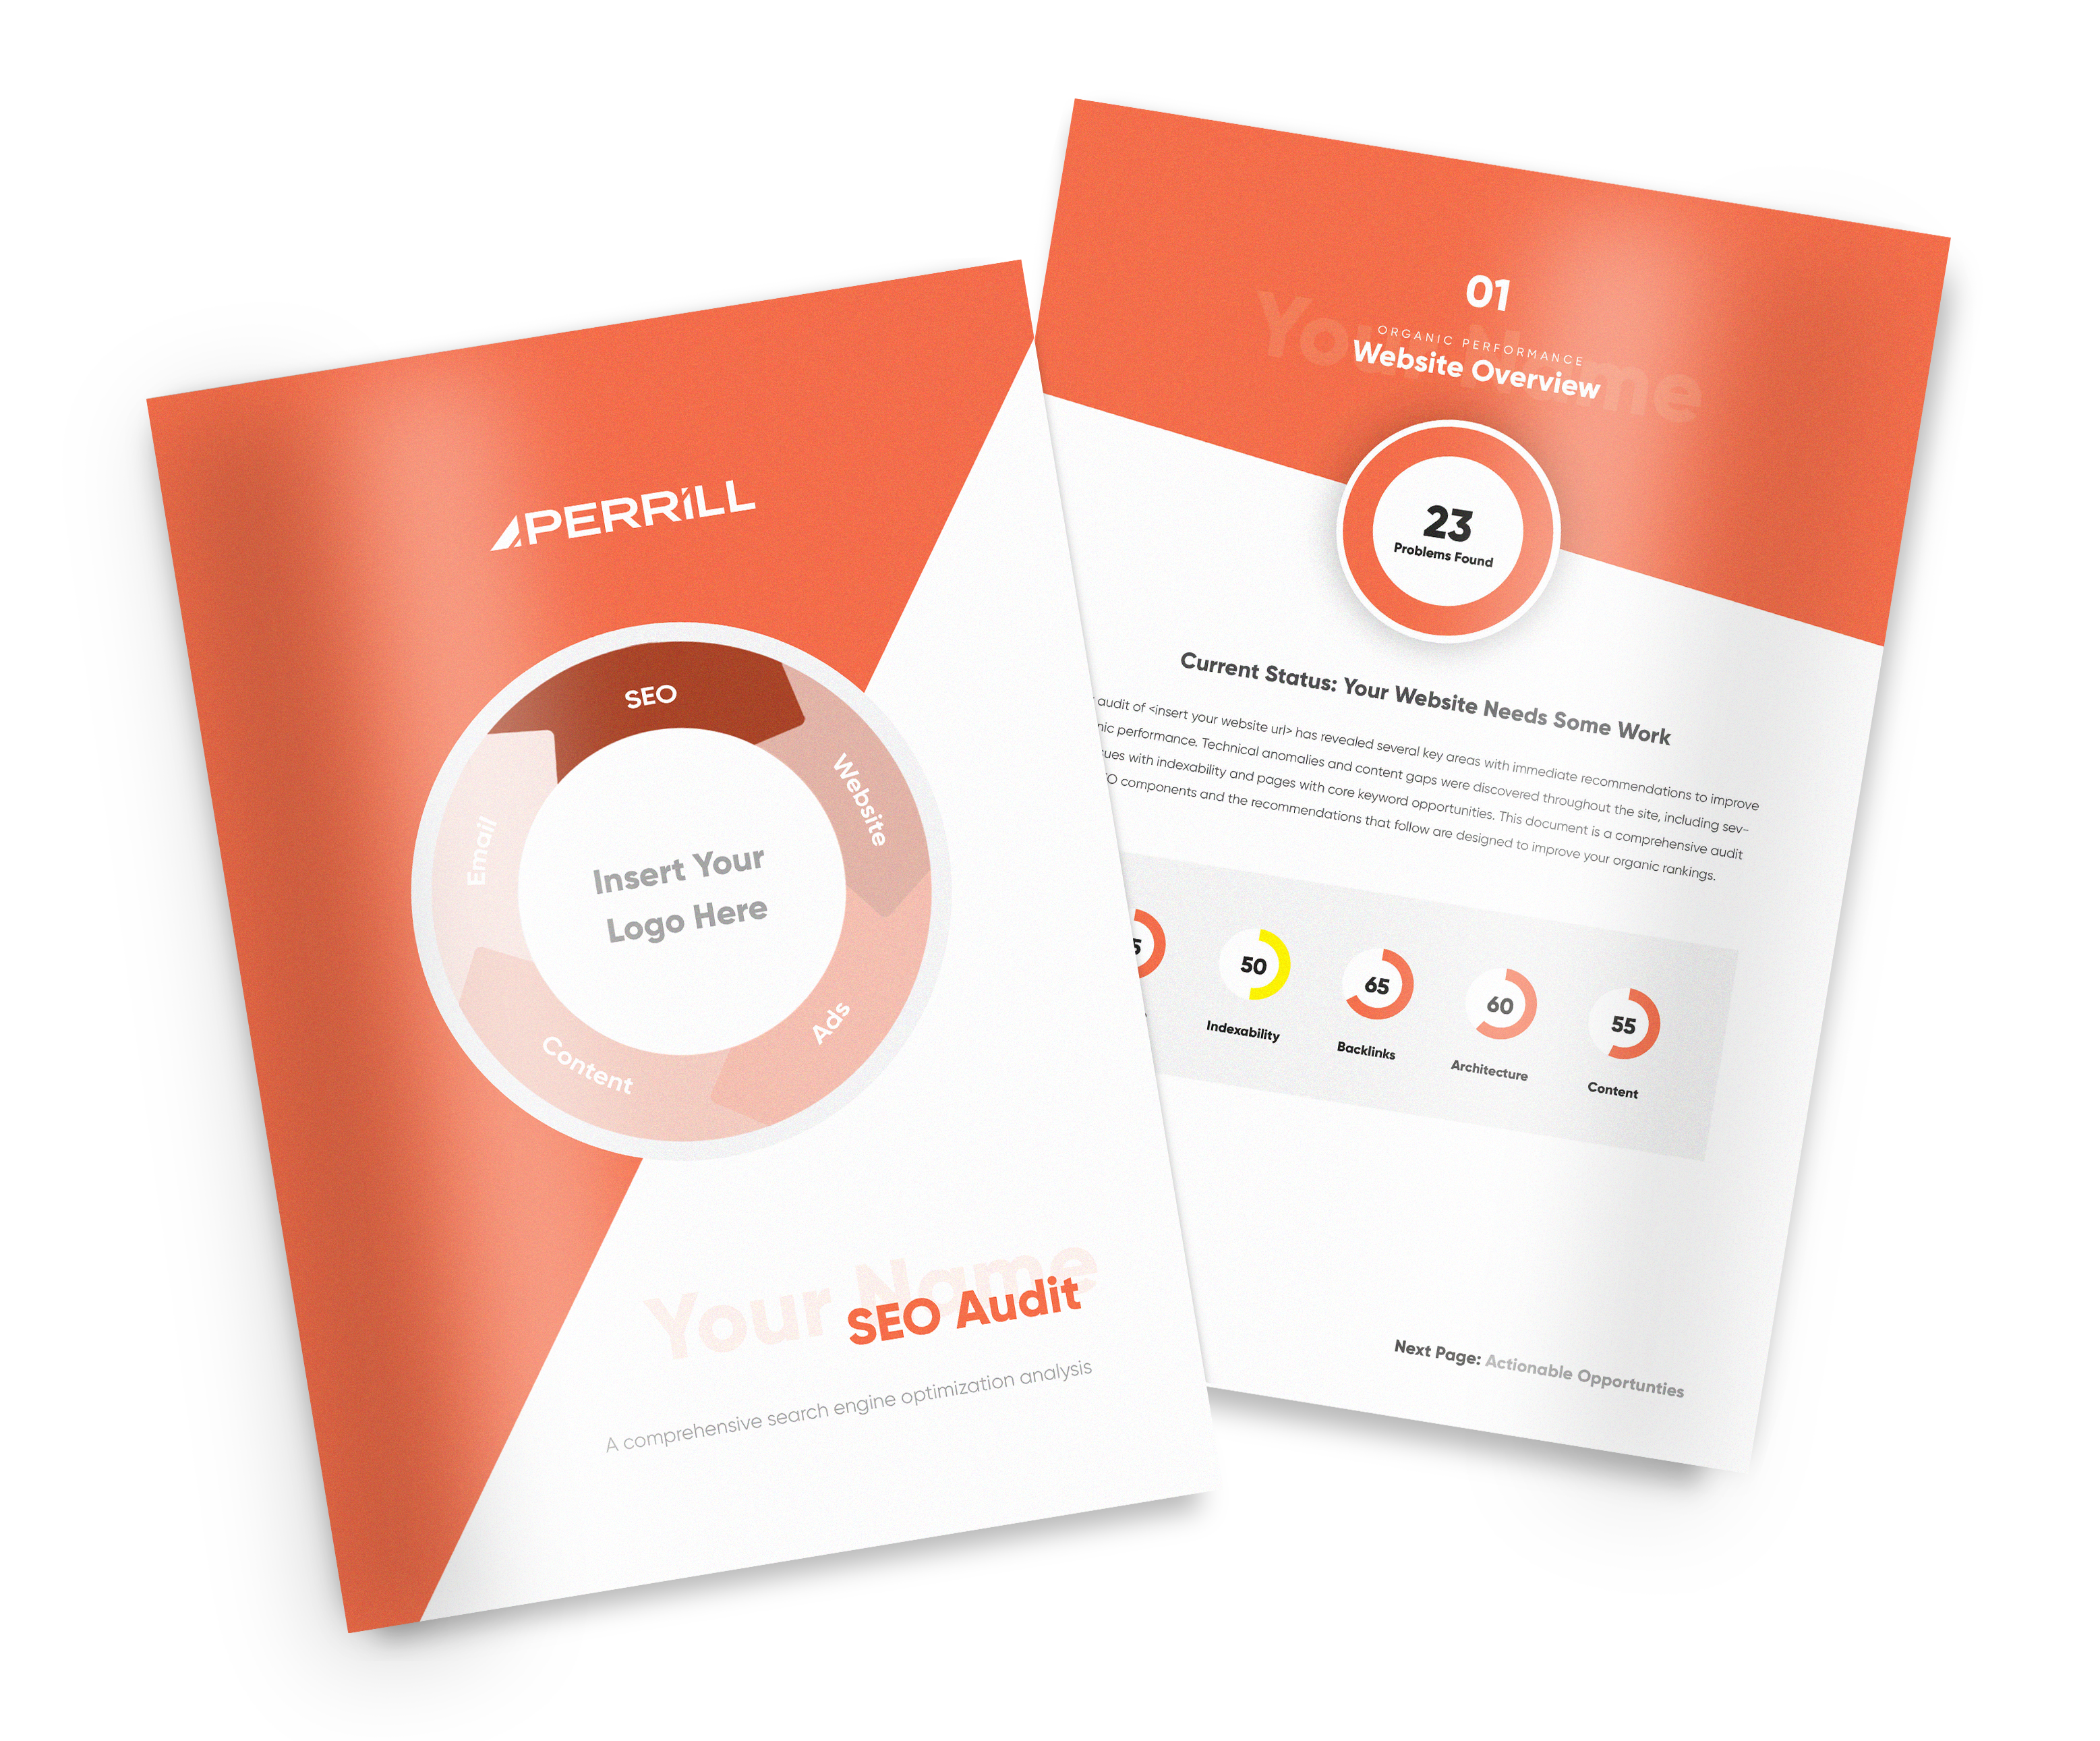 SEO Audit Document Mockup_Orange_General